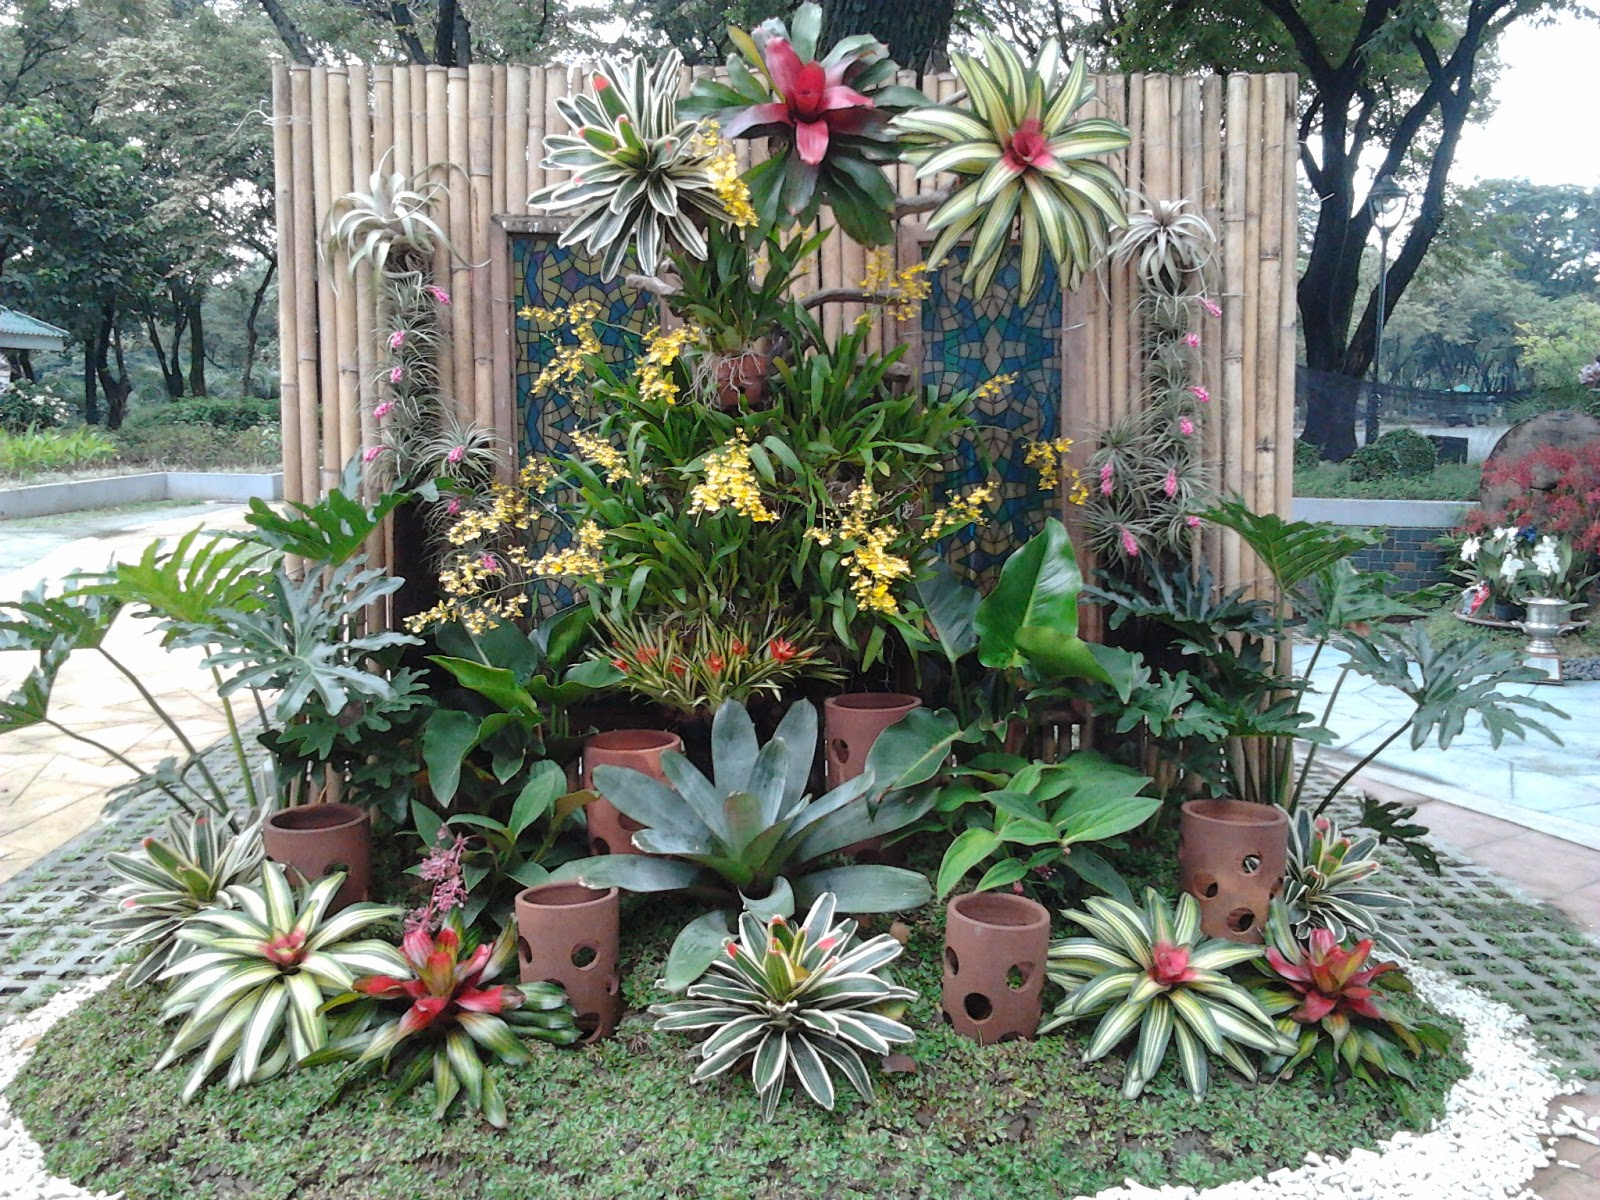 Philippine orchid events february 2015 for Garden design ideas in philippines